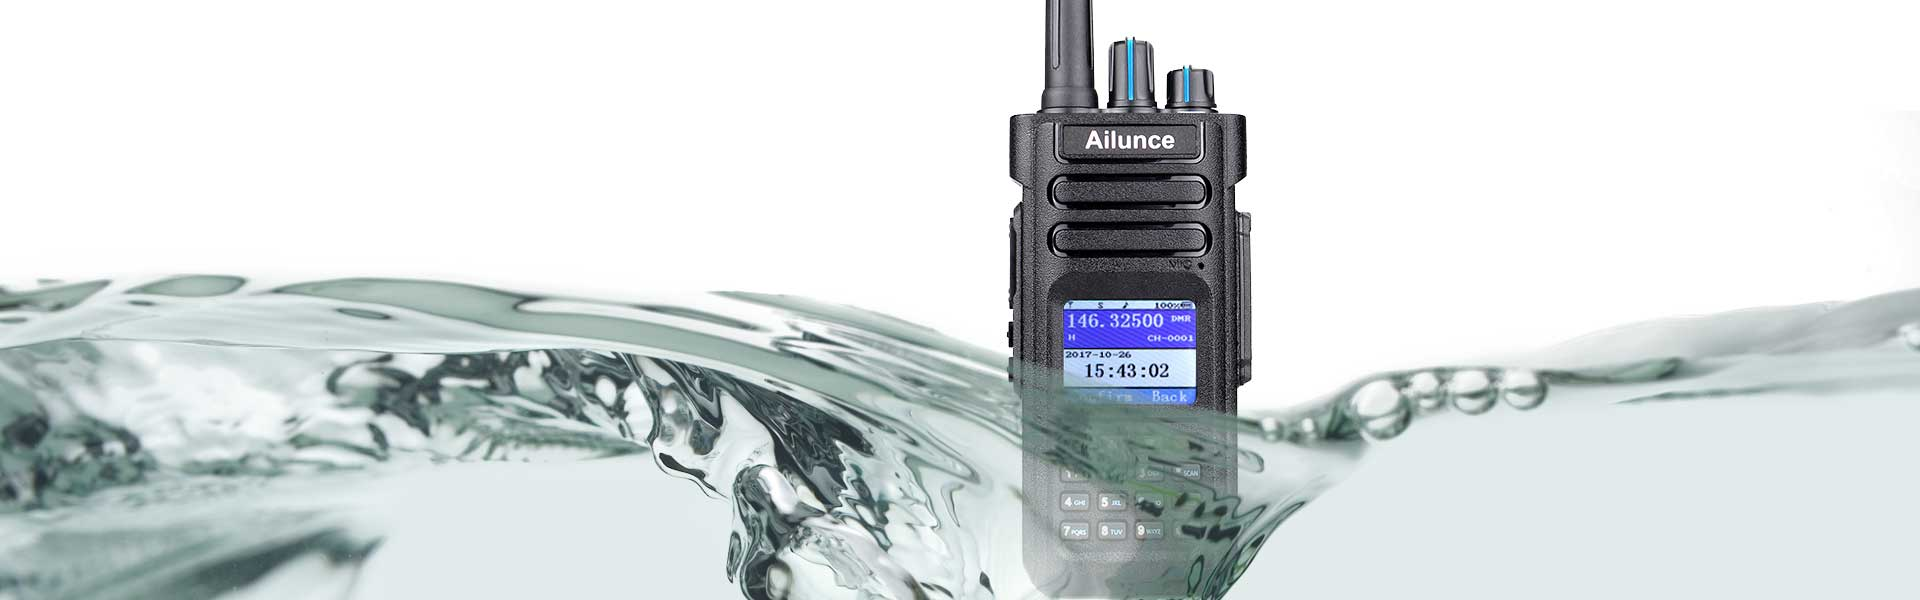 10 Watt Dual Band IP67 10 W UHF VHF DMR Digital Amatuer Walkie Talkie Two Way Radio GPS Woki Toki